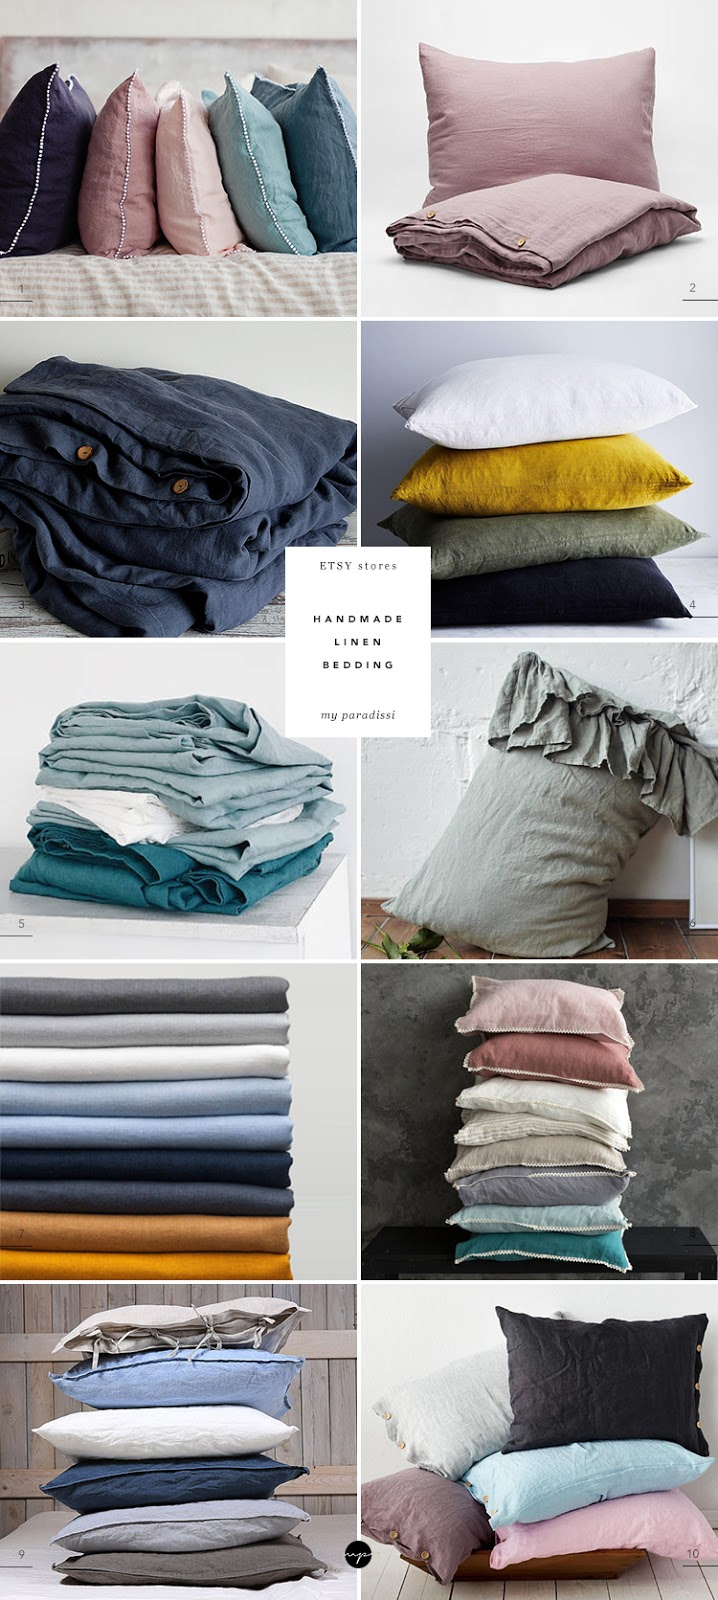 ON MY RADAR: Etsy stores with handmade linen bedding. Natural linens for bedroom, ETSY stores with natural linen bedding, handmade linen bedding, flax bedding, modern home linens, linen home textiles, quality linen for the bedroom